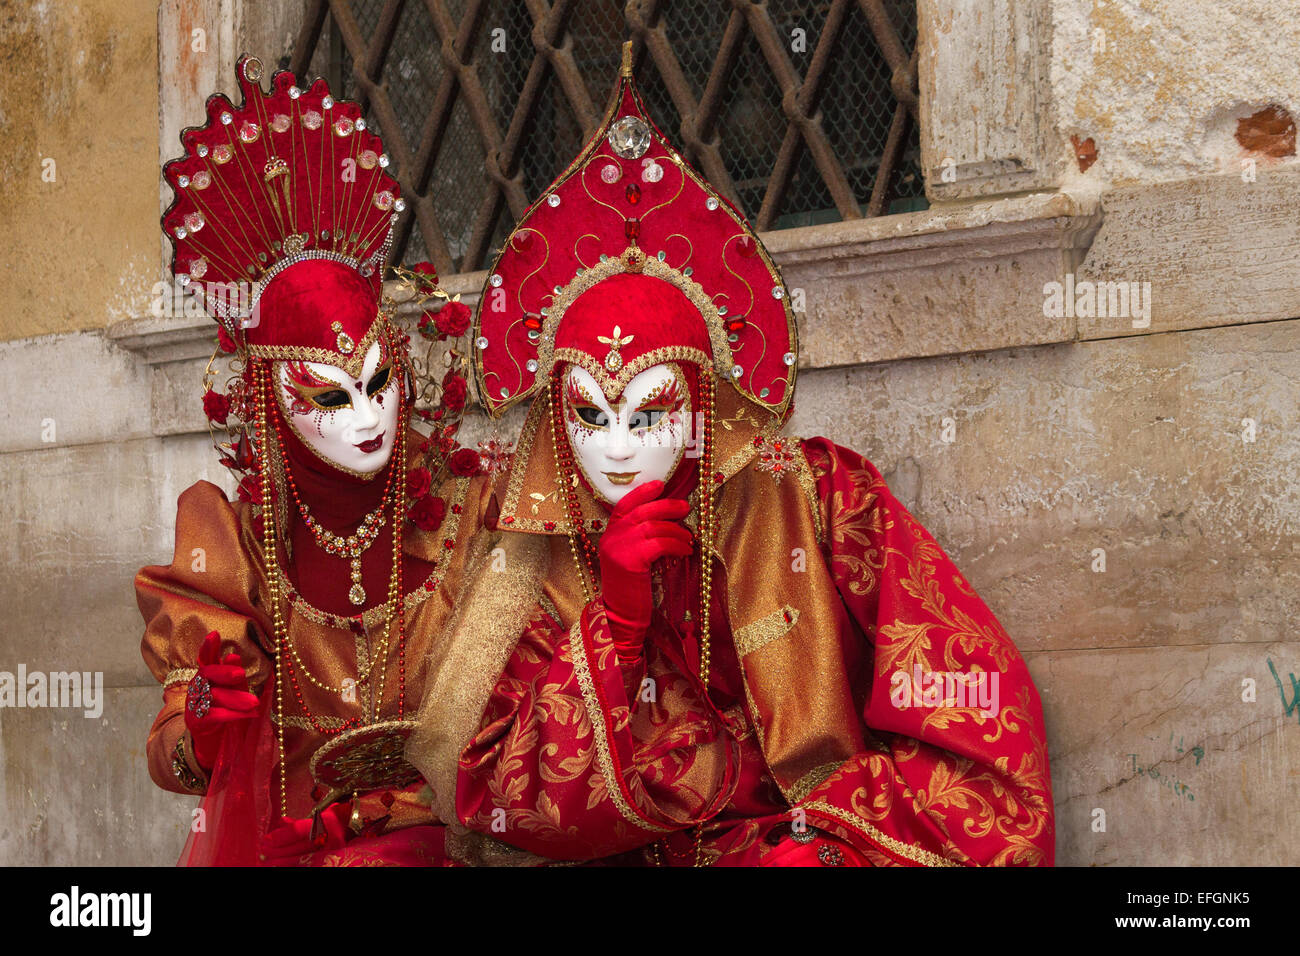 Costumed couple on the Piazza San Marco during Venice Carnival in Venice, Italy. Stock Photo